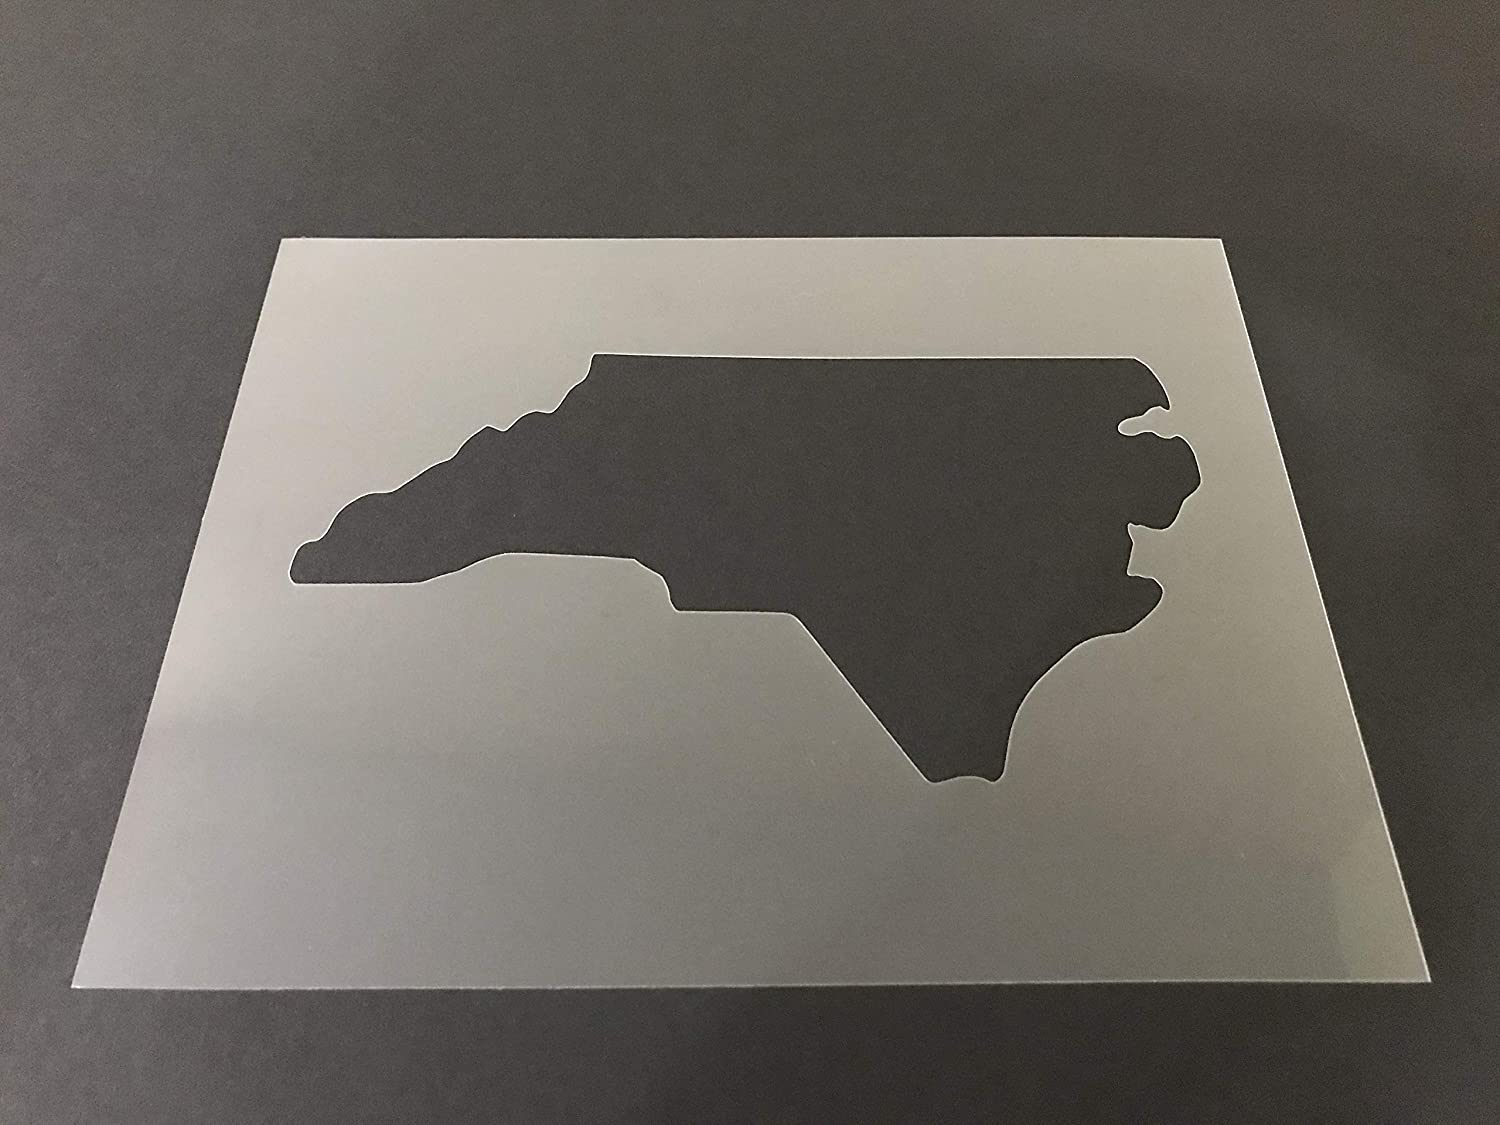 North Carolina #1 Stencil Reusable 10 mil Thick 8in x 10.5in sheet